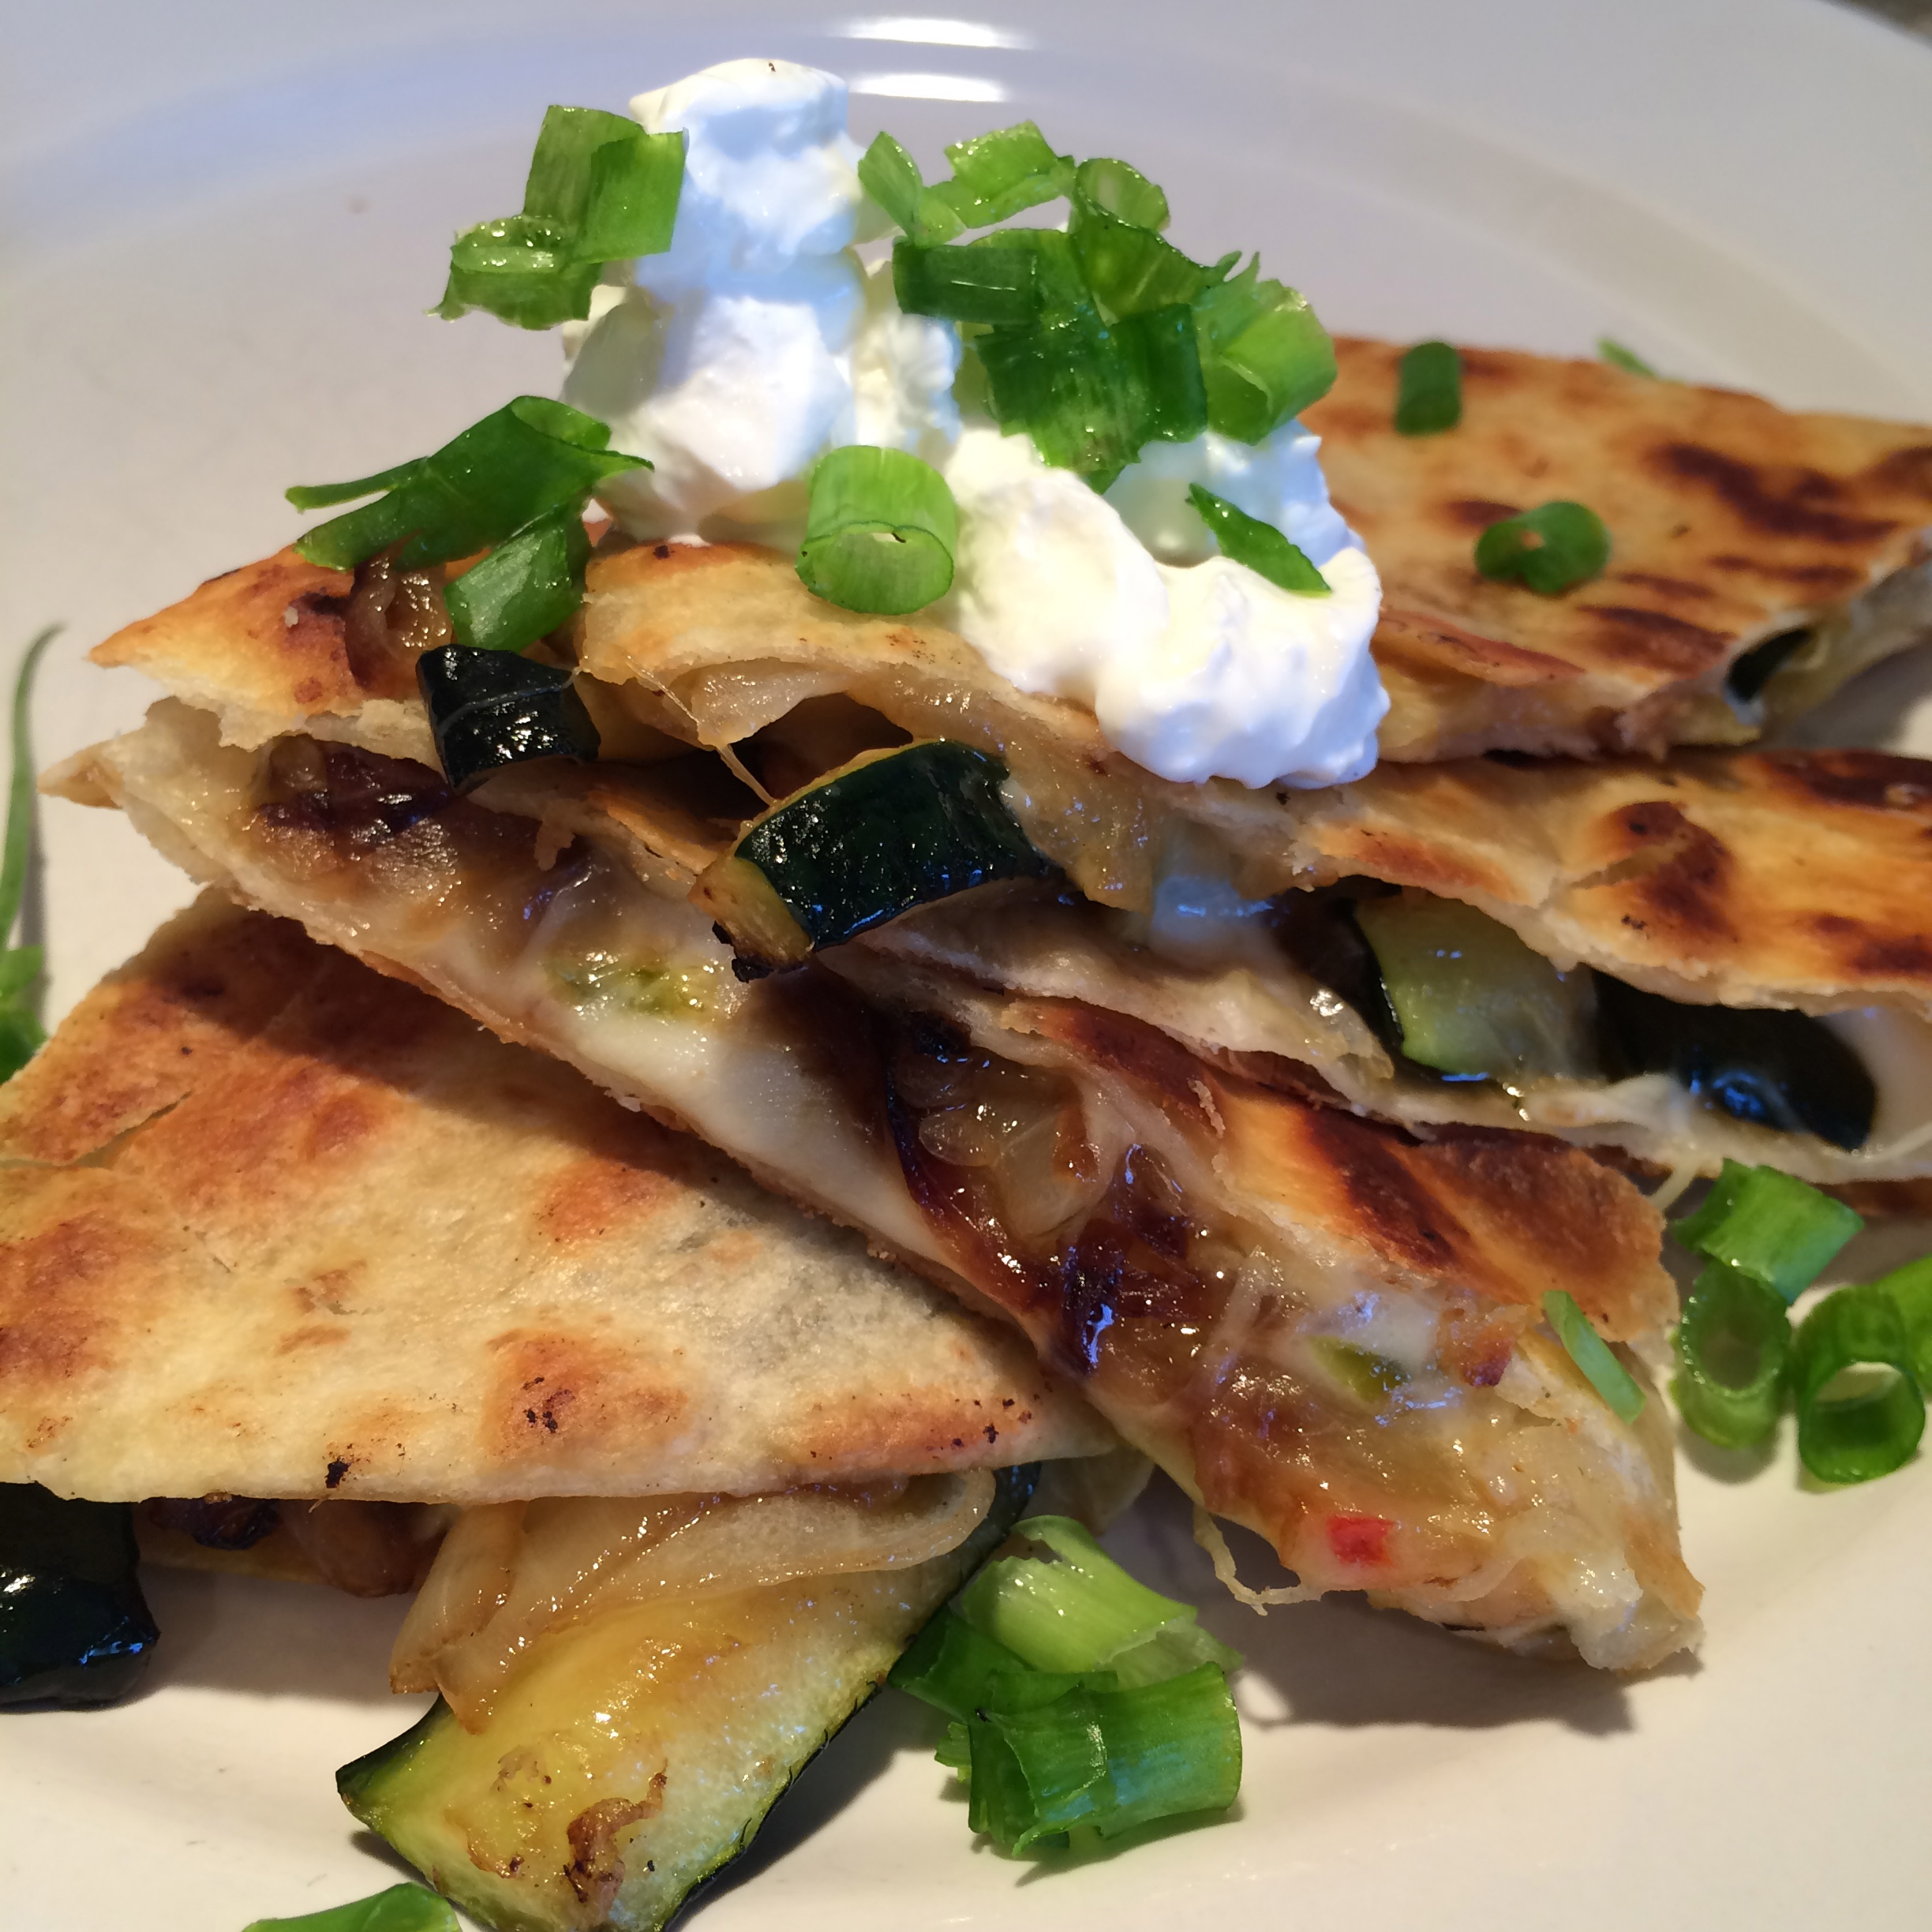 Zucchini and Grilled Onion Quesadilla